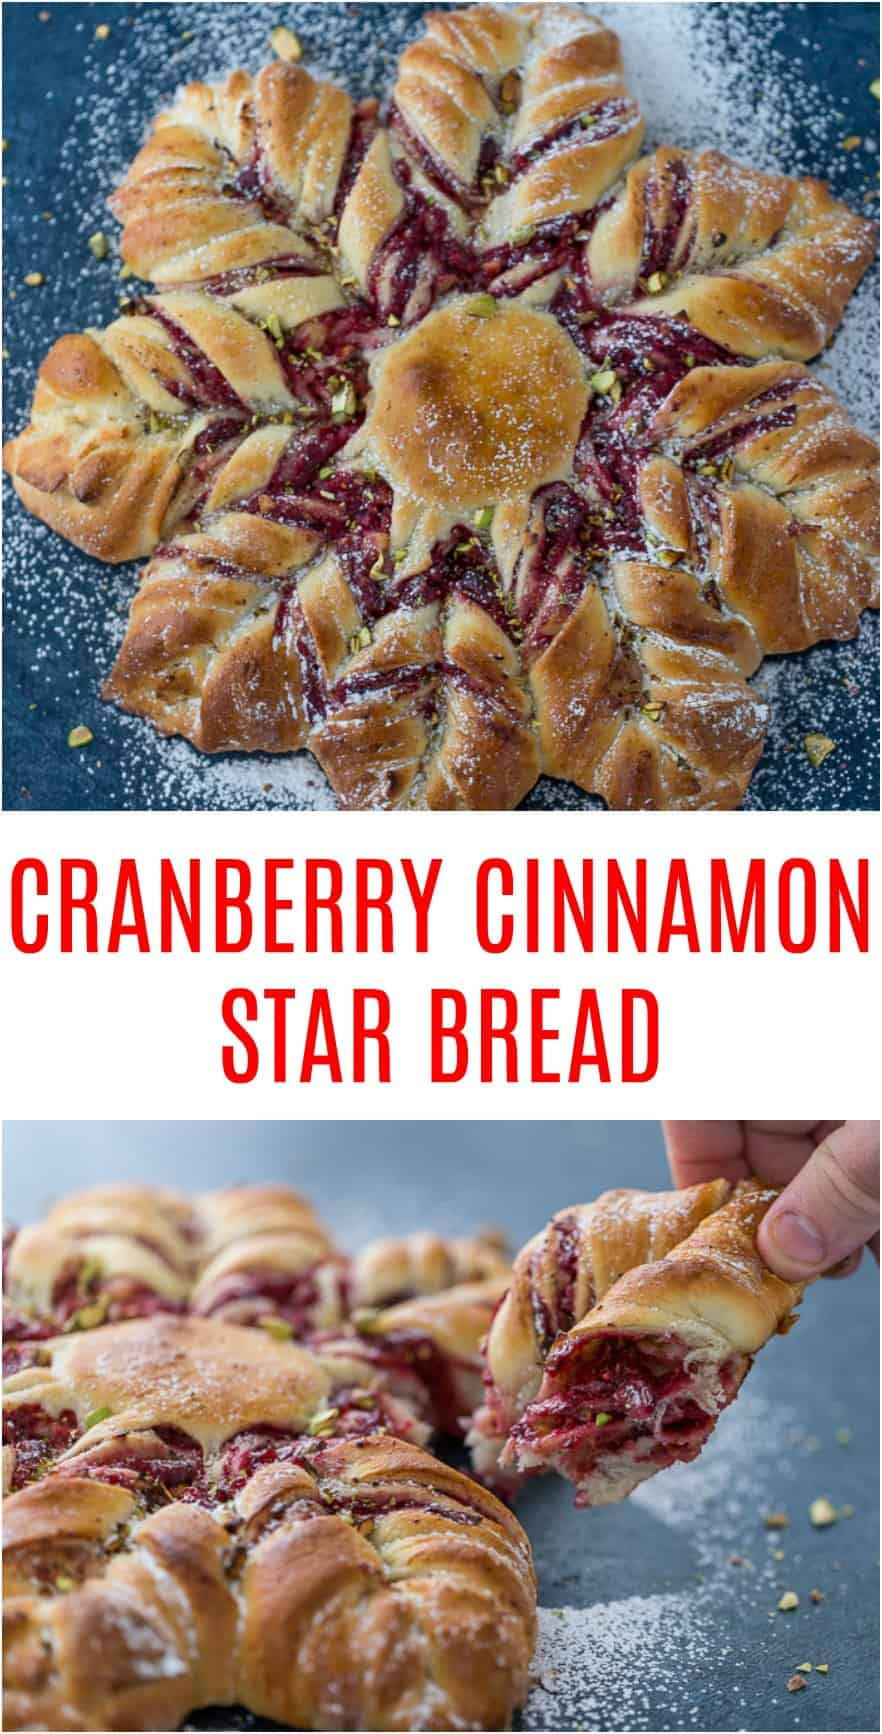 This Cranberry Cinnamon Star Bread is a holiday spectacular with a warm cranberry, brie and pistachio filling wrapped around a fluffy bread. #holidayrecipe #cinnamon #bread #cranberries